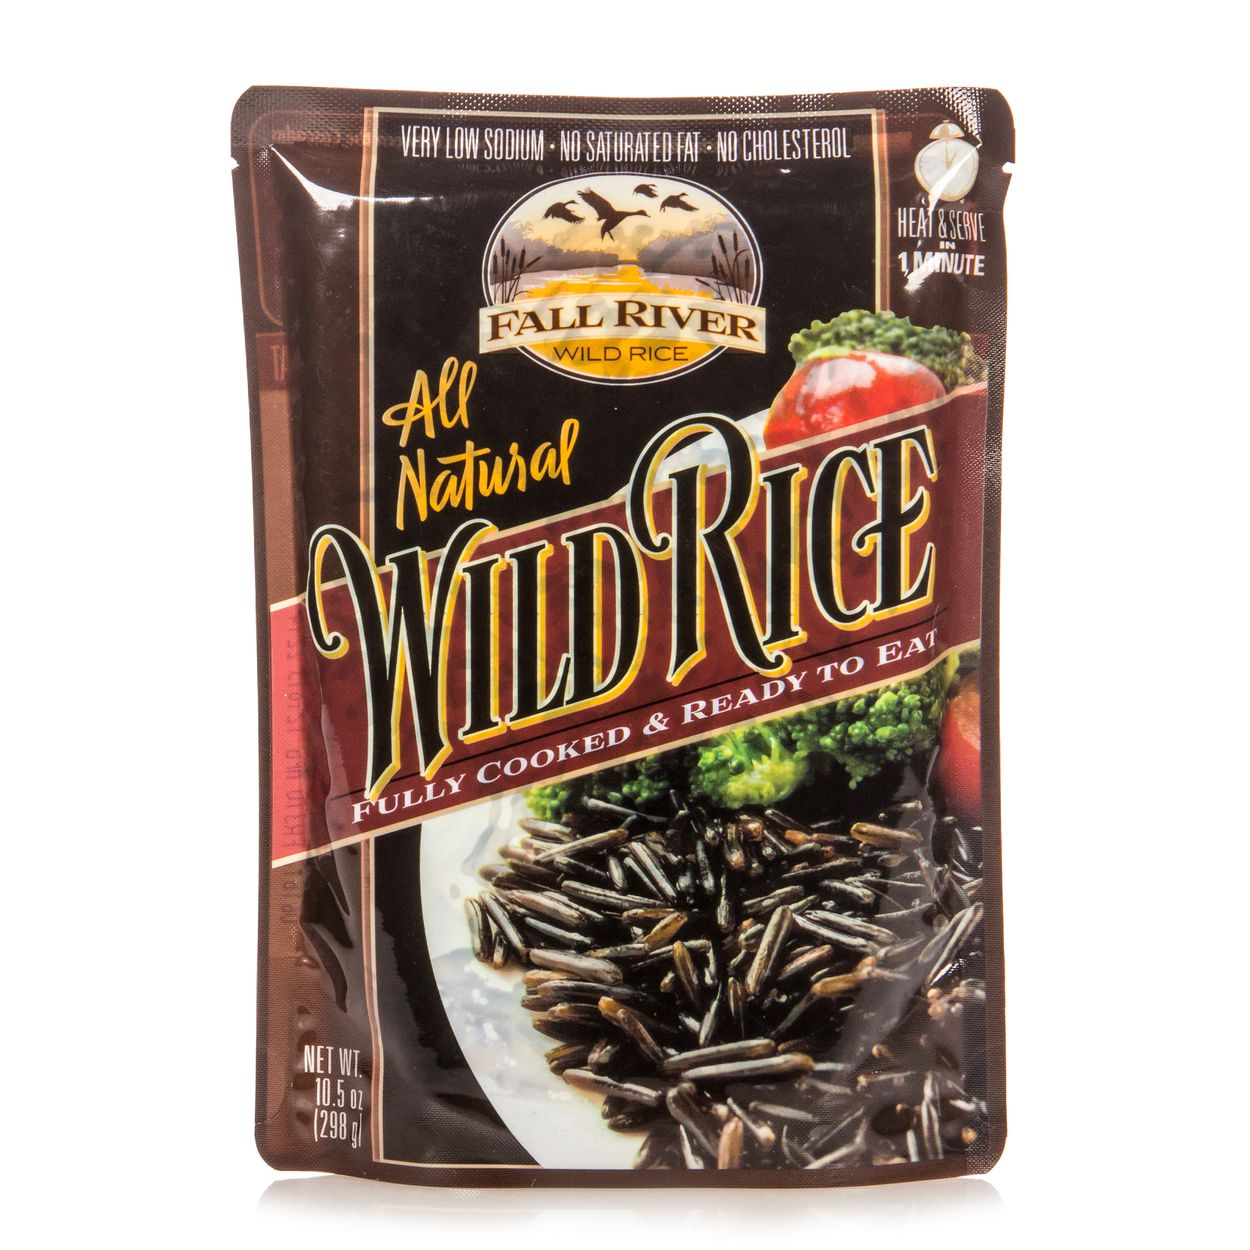 Fall River Wild Rice, Fully Cooked, Pouch - Azure Standard